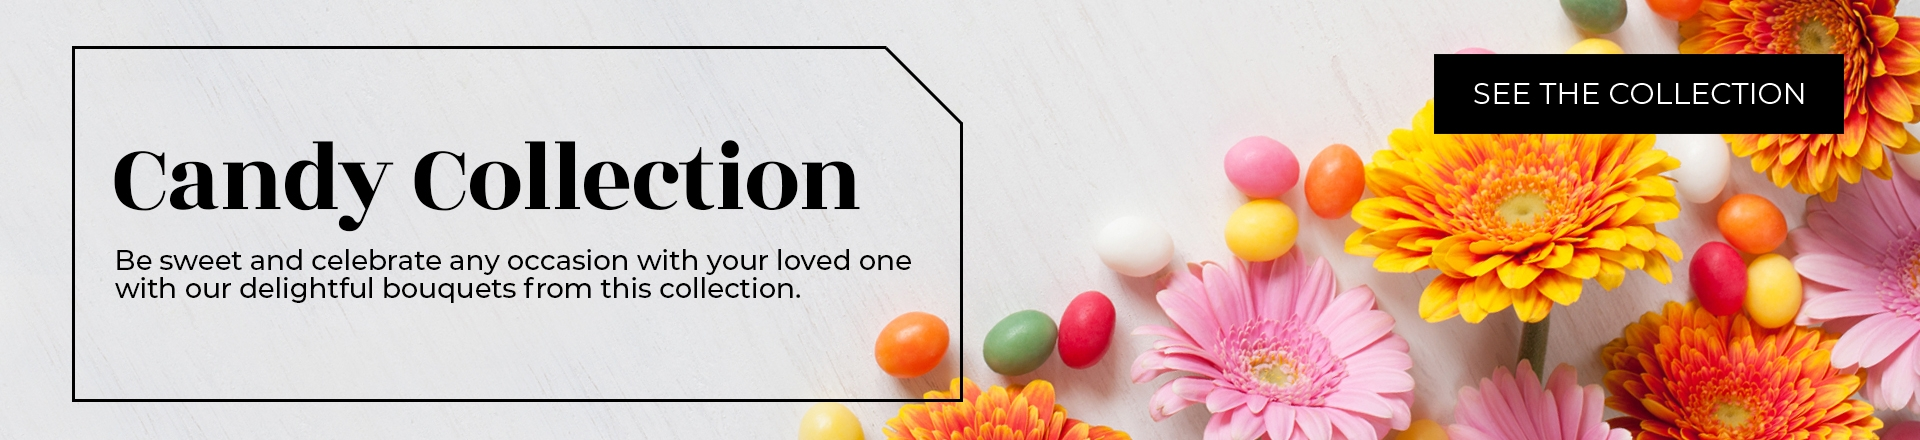 Candy-Collection-featured